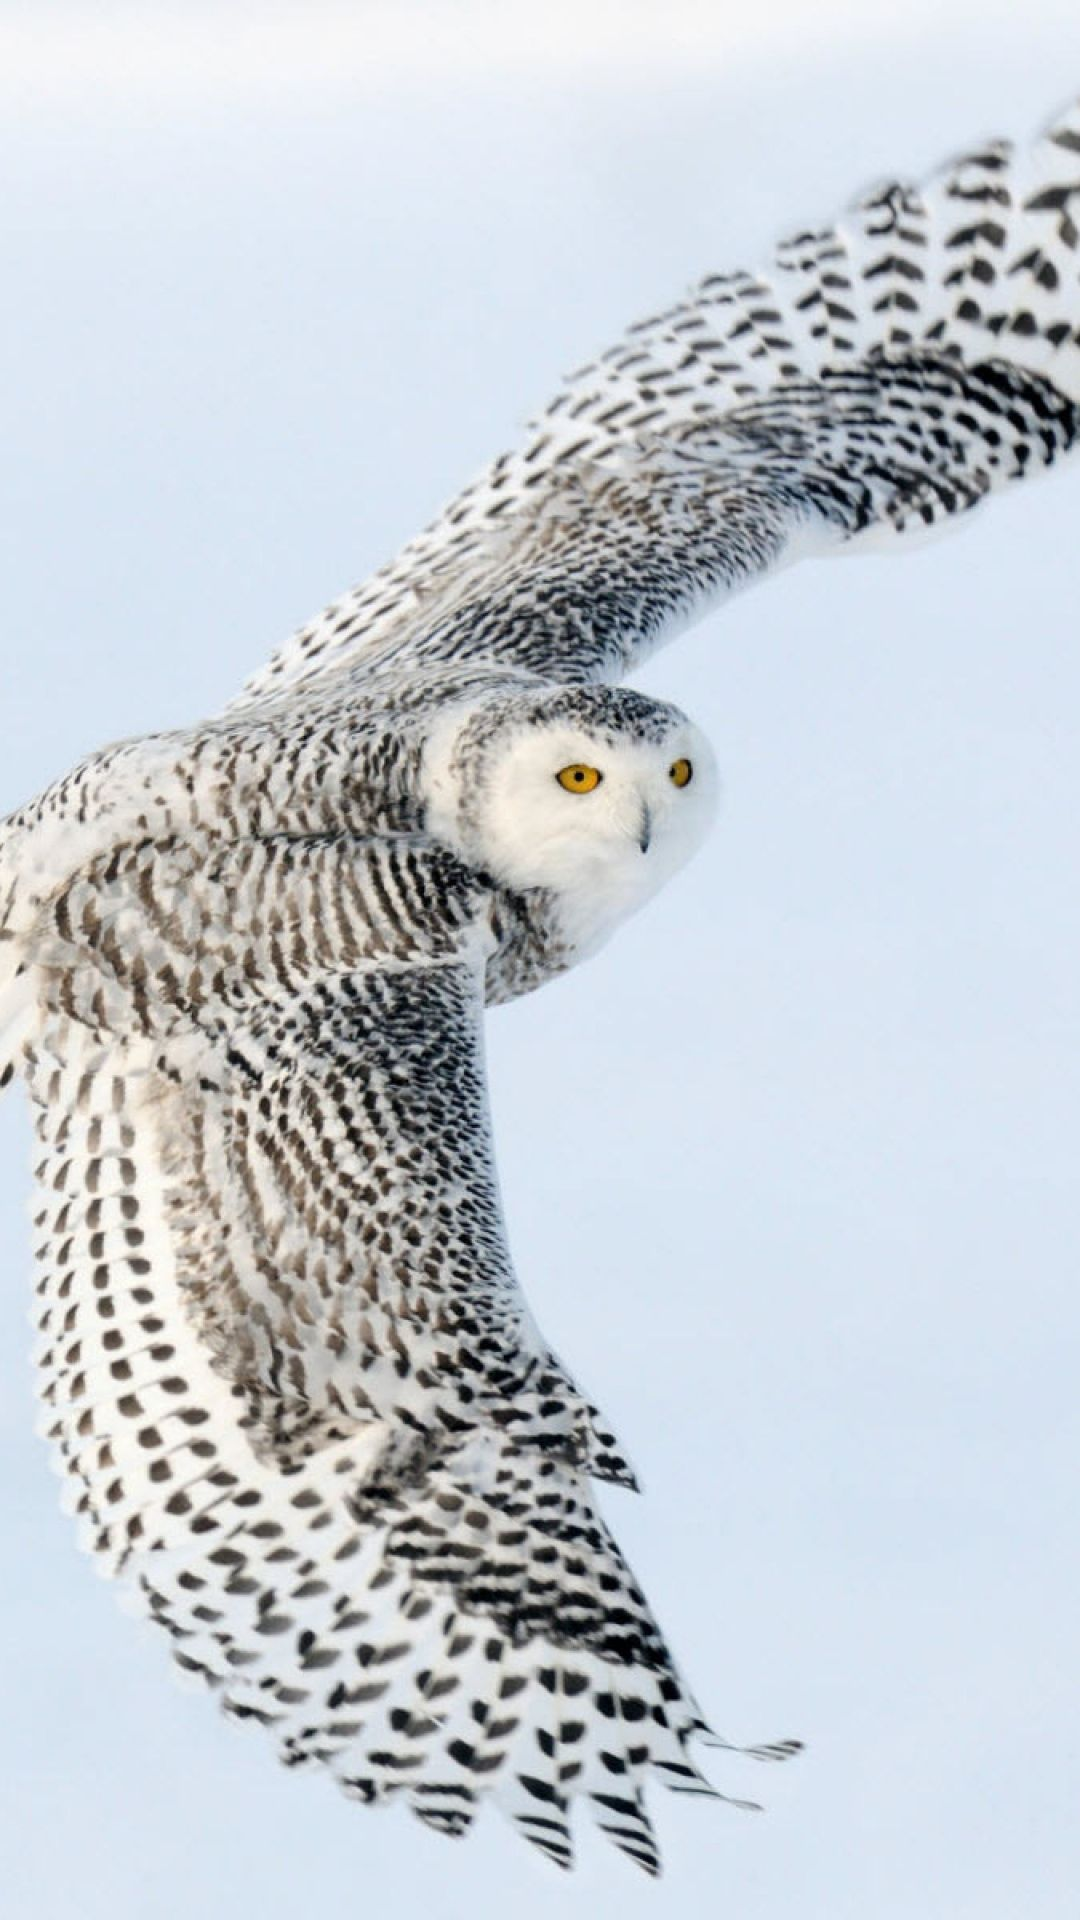 Snowy Owl on the wing..what magnificence (female)